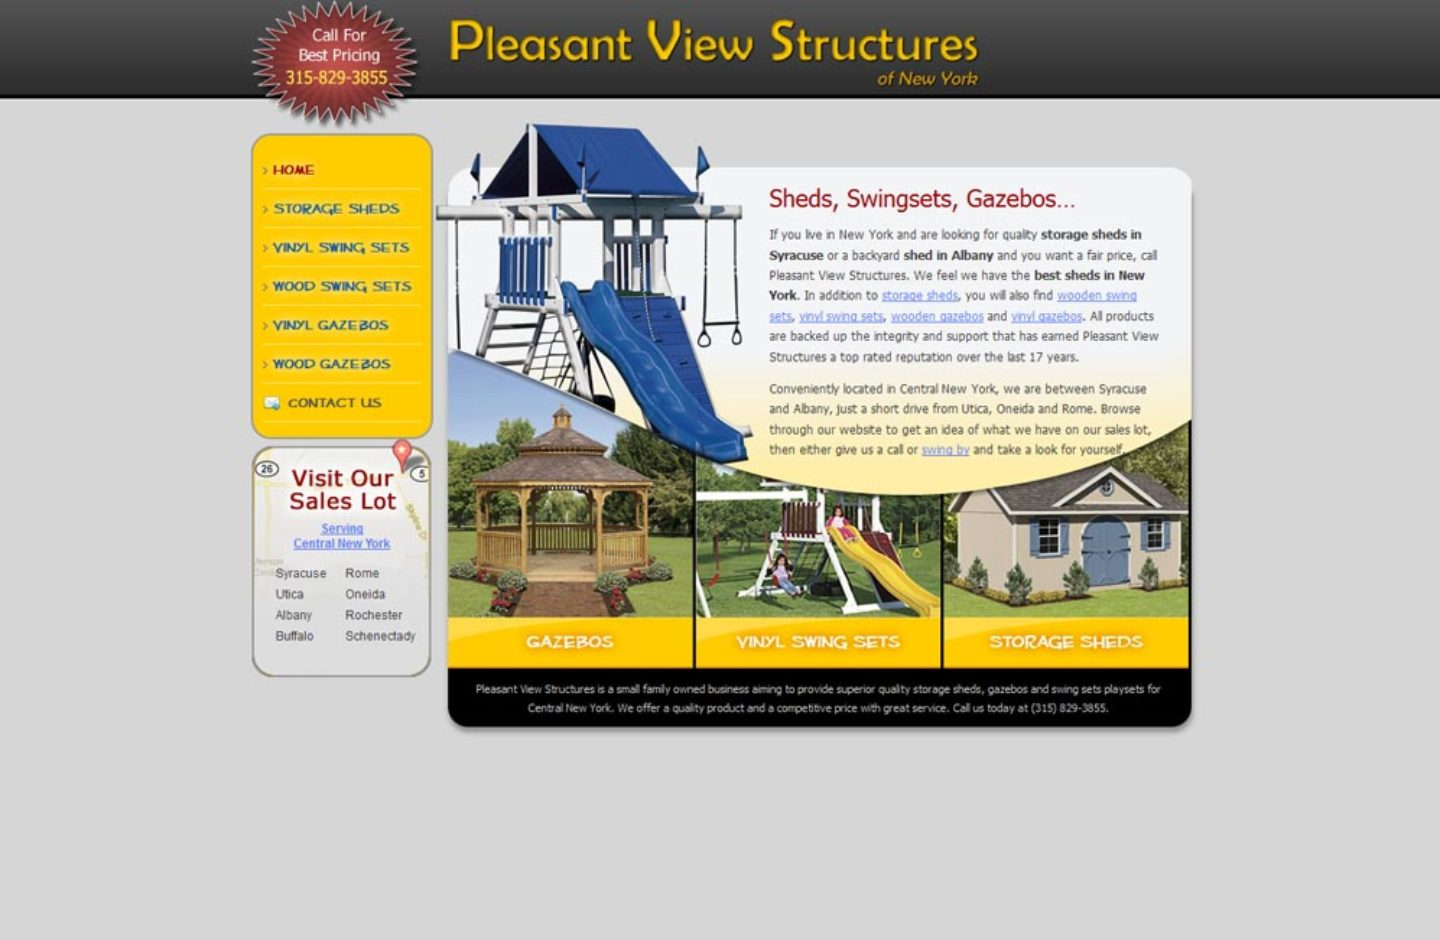 Pleasant View Structures